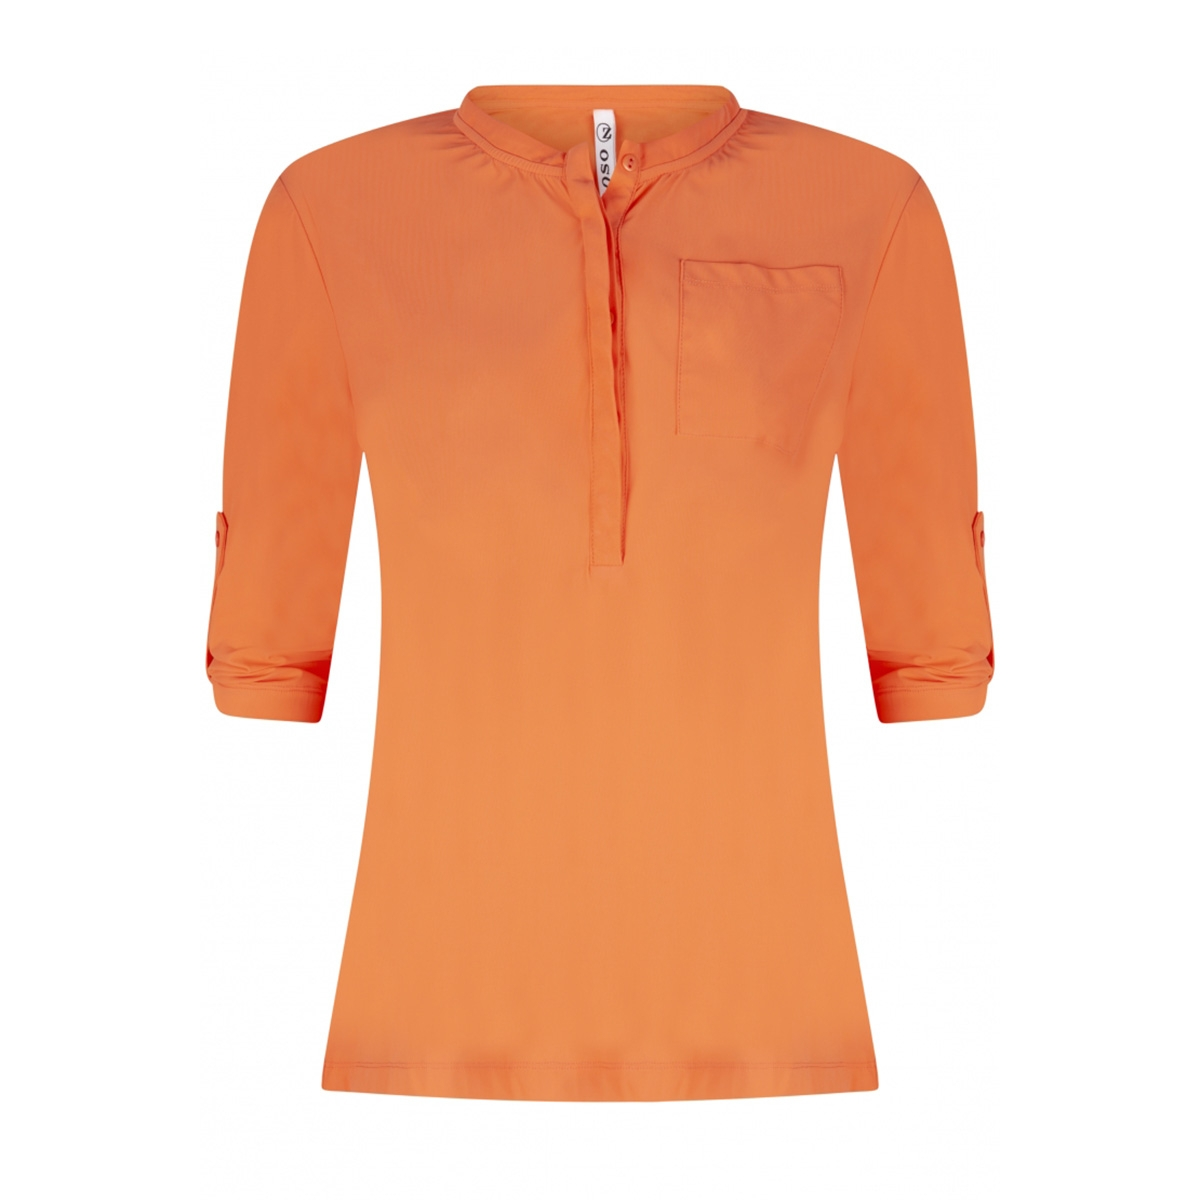 britney travel blouse 192 zoso blouse 0078 salmon